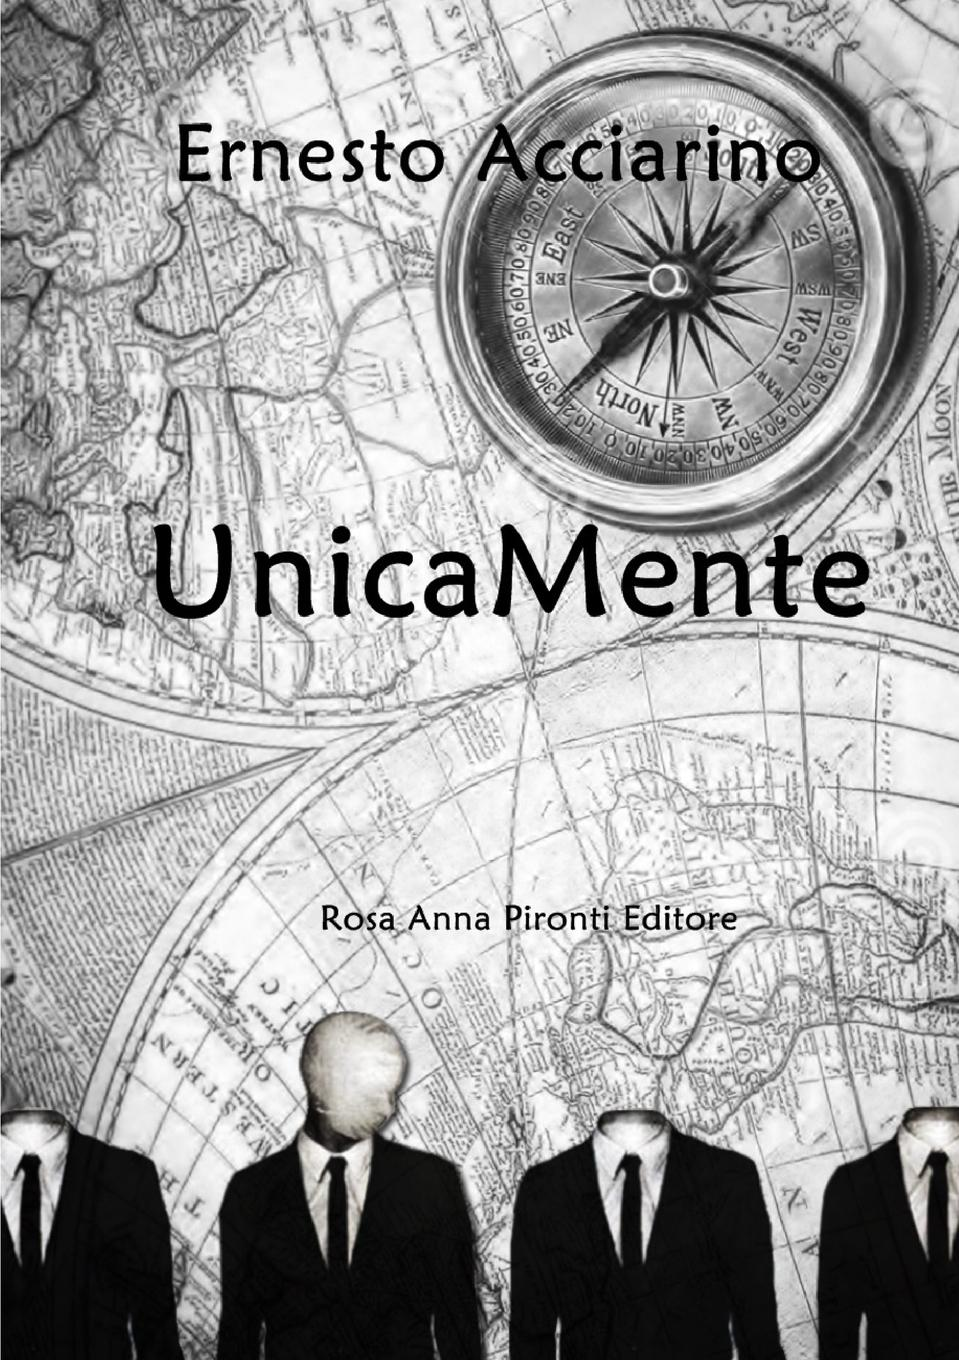 UnicaMente  Ernesto Acciarino  Taschenbuch  25:B&W 5.83 x 8.27 in or 210 x 148 mm (A5) Perfect Bound on White w/Gloss Lam  Italienisch  2015 - Acciarino, Ernesto